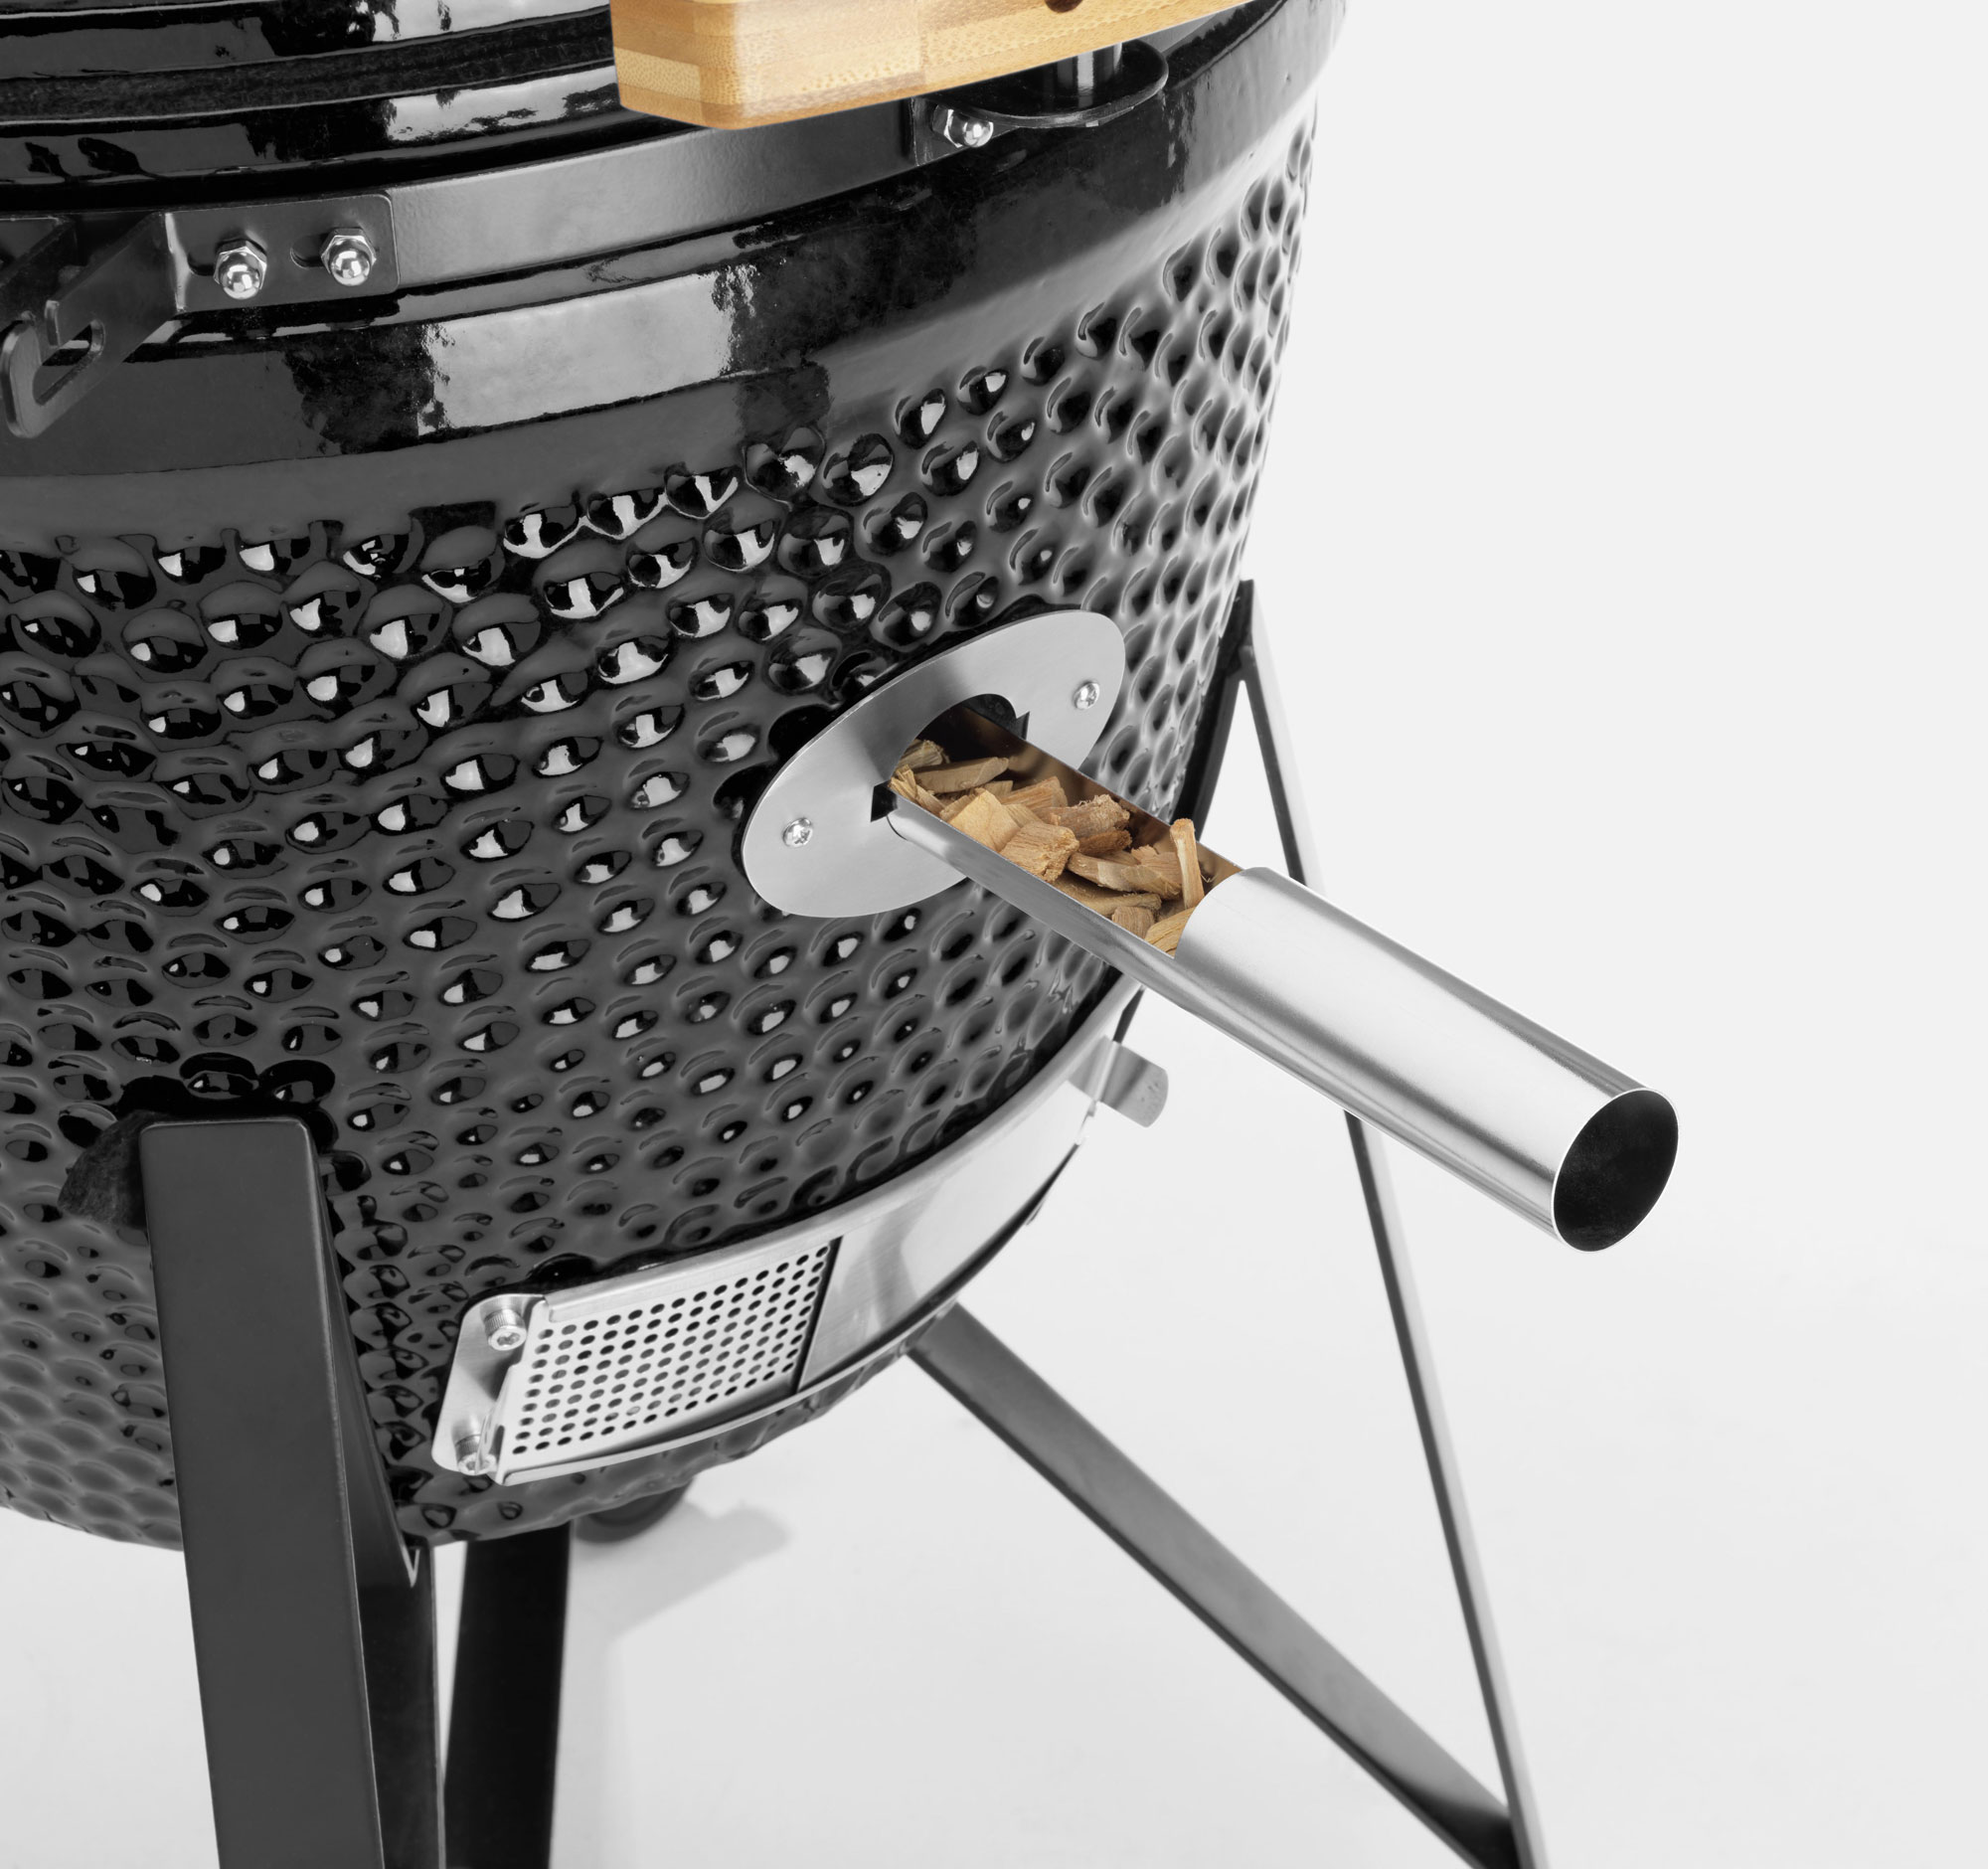 Holzgrill / Keramikgrill Justus Black J'Egg XL Chip Supply Ø47cm Bild 3